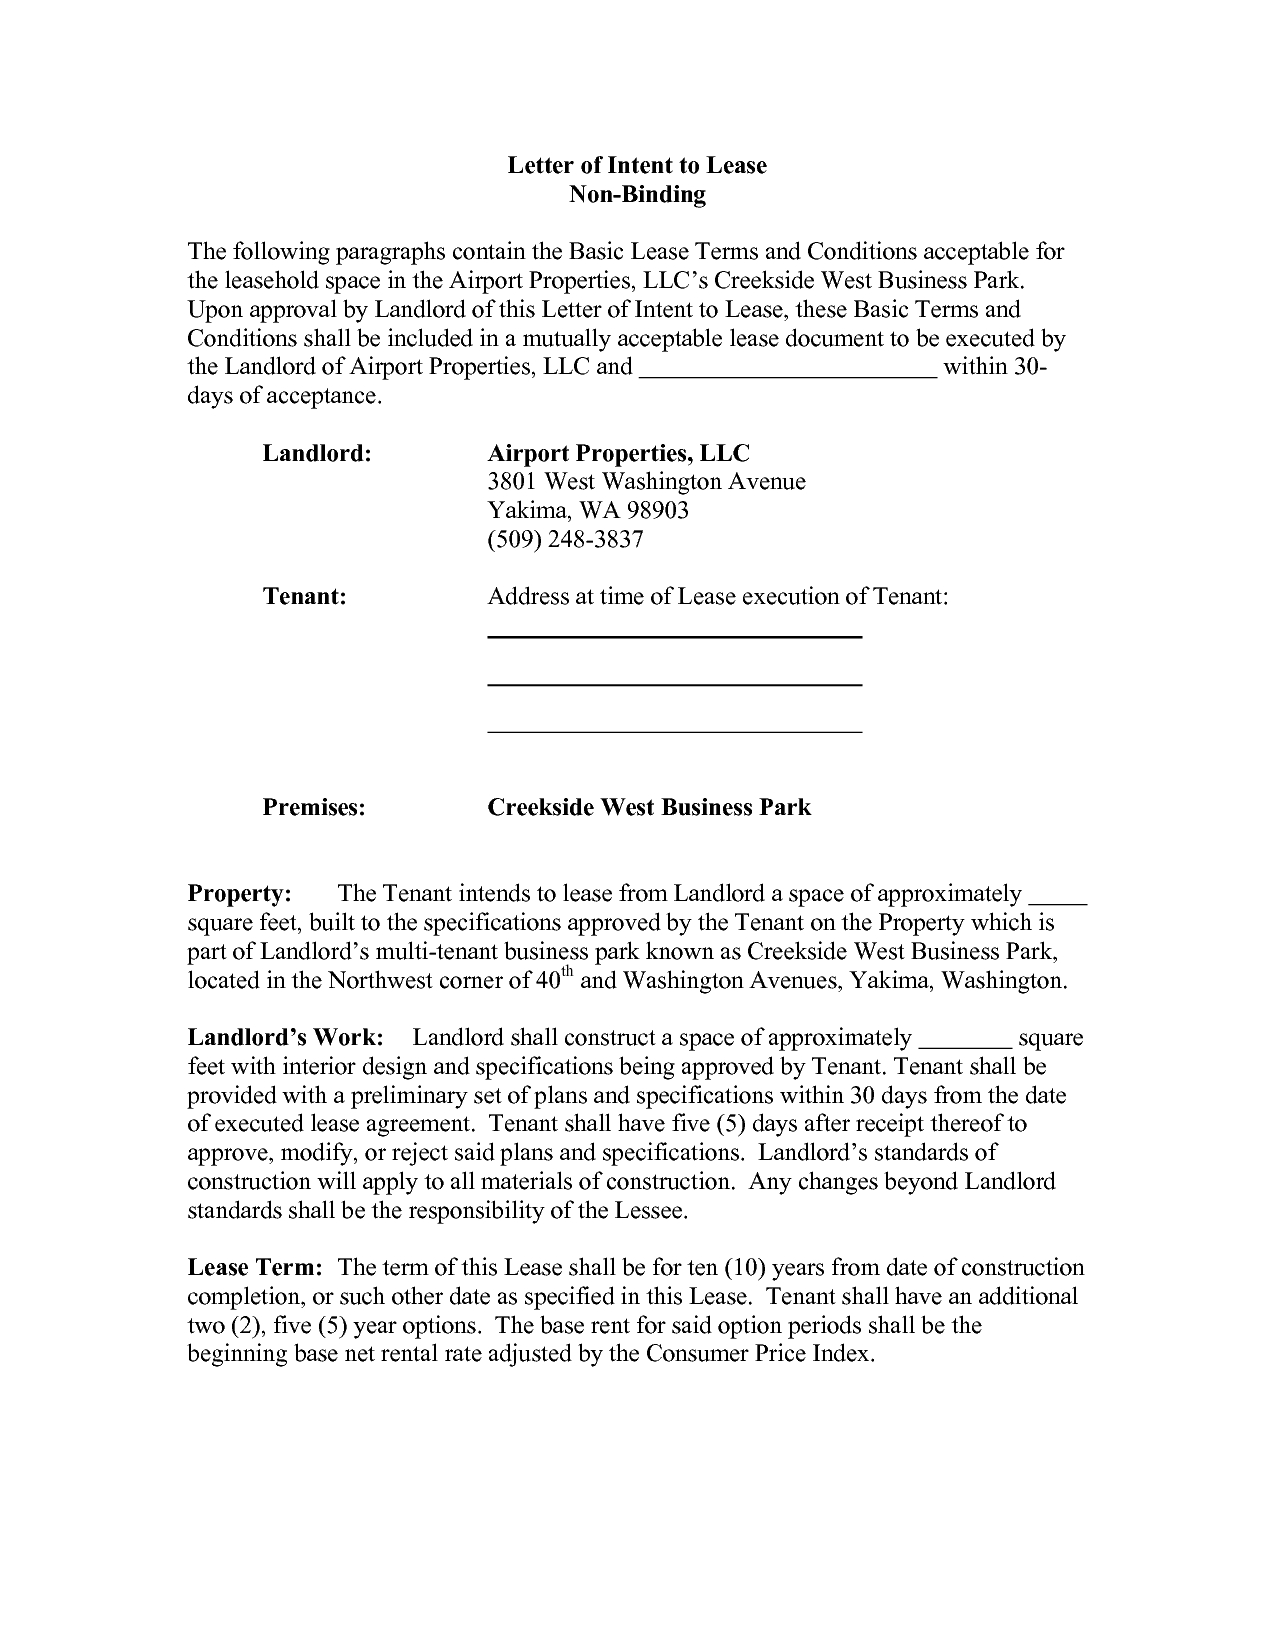 Commercial Real Estate Lease Letter Of Intent Template - Letter Intent Real Estate Lease Hd Best Ideas Sample Nice